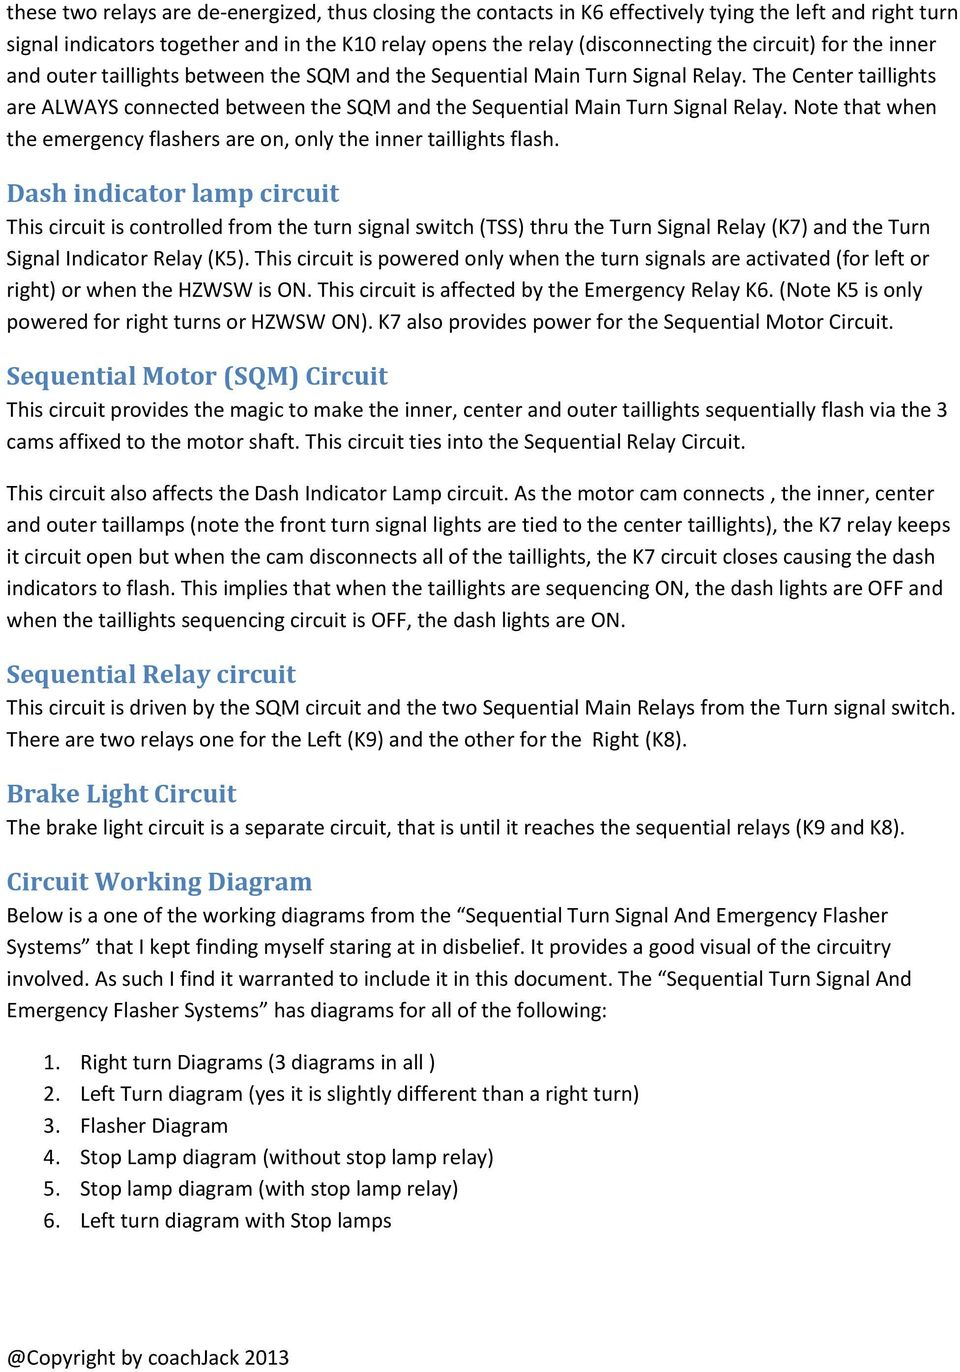 Everything You Wanted To Know About The 67 Cougar Sequential Brake Light Relay Wiring Diagram Center Taillights Are Always Connected Between Sqm And Main Turn Signal